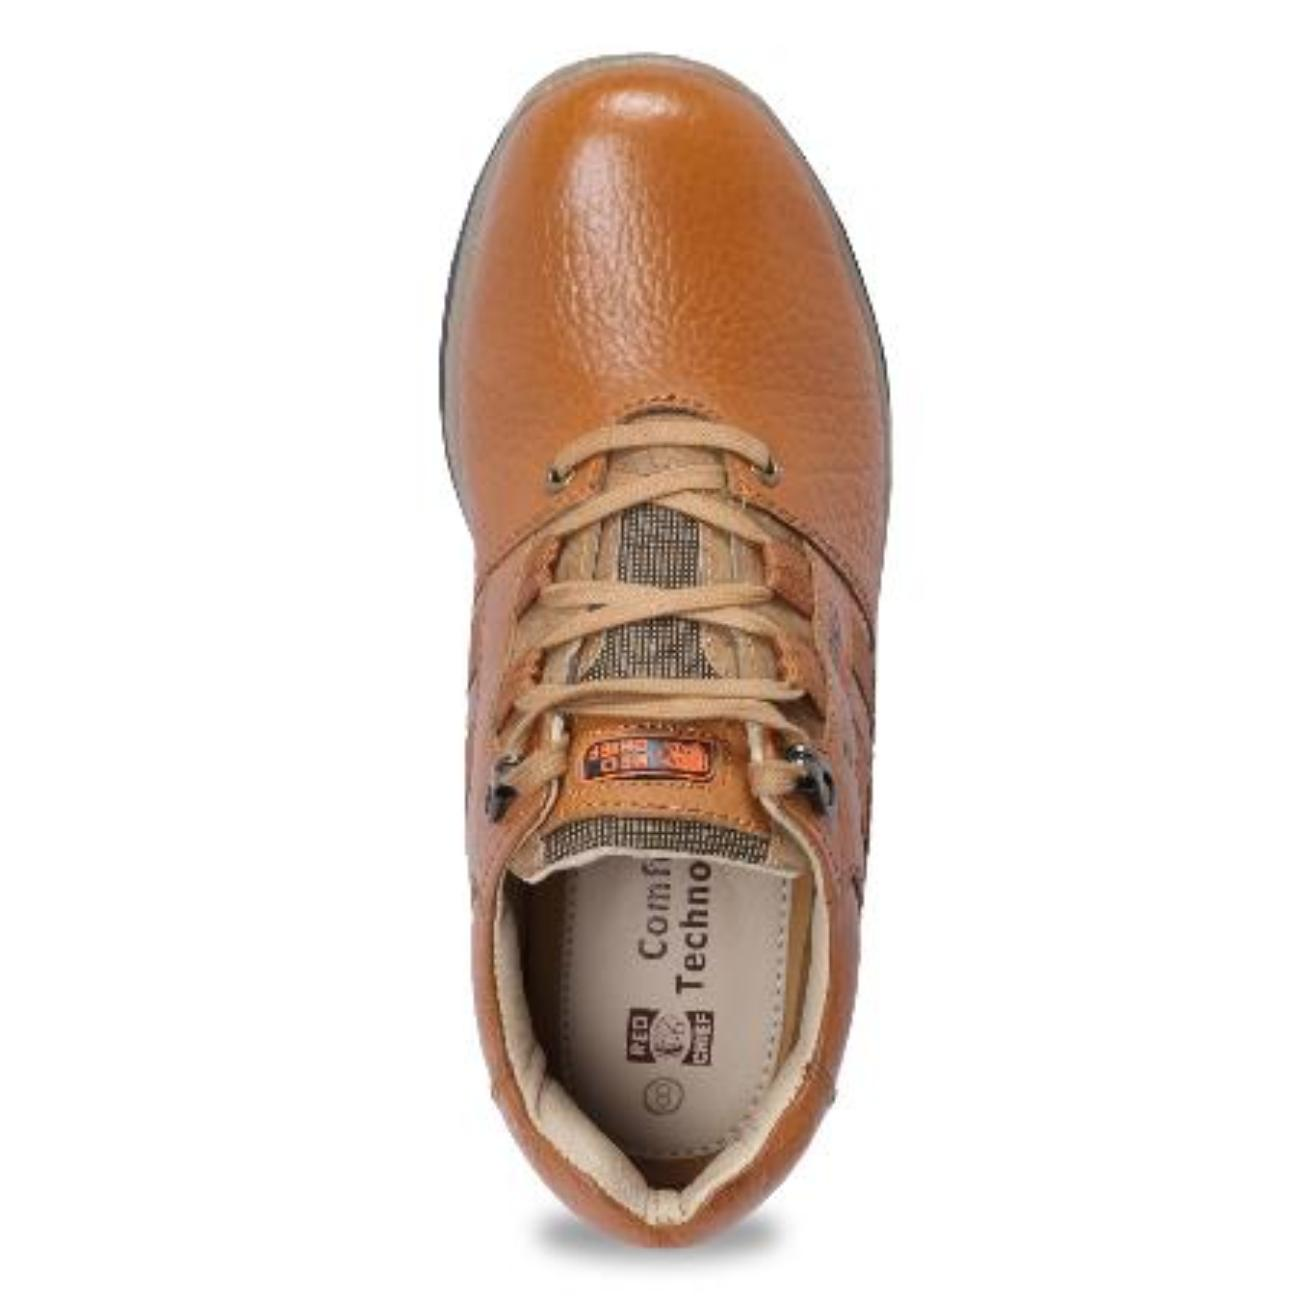 low ankle elephant tan casual leather shoes top view